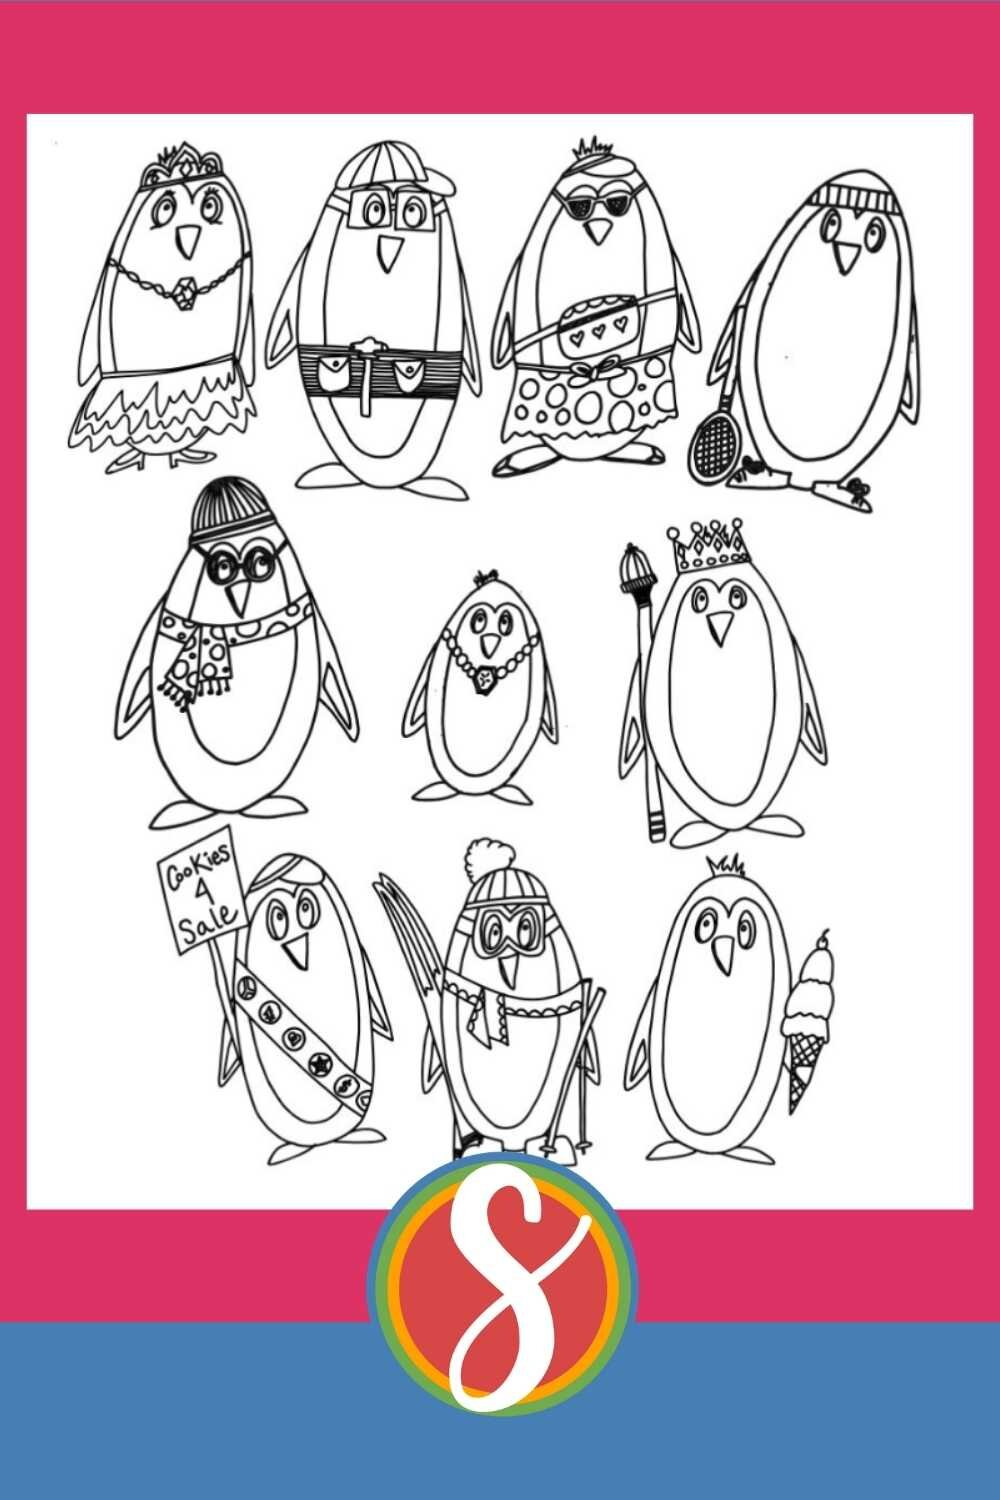 10 Penguins - Free printable penguin coloring pages from Stevie Doodles